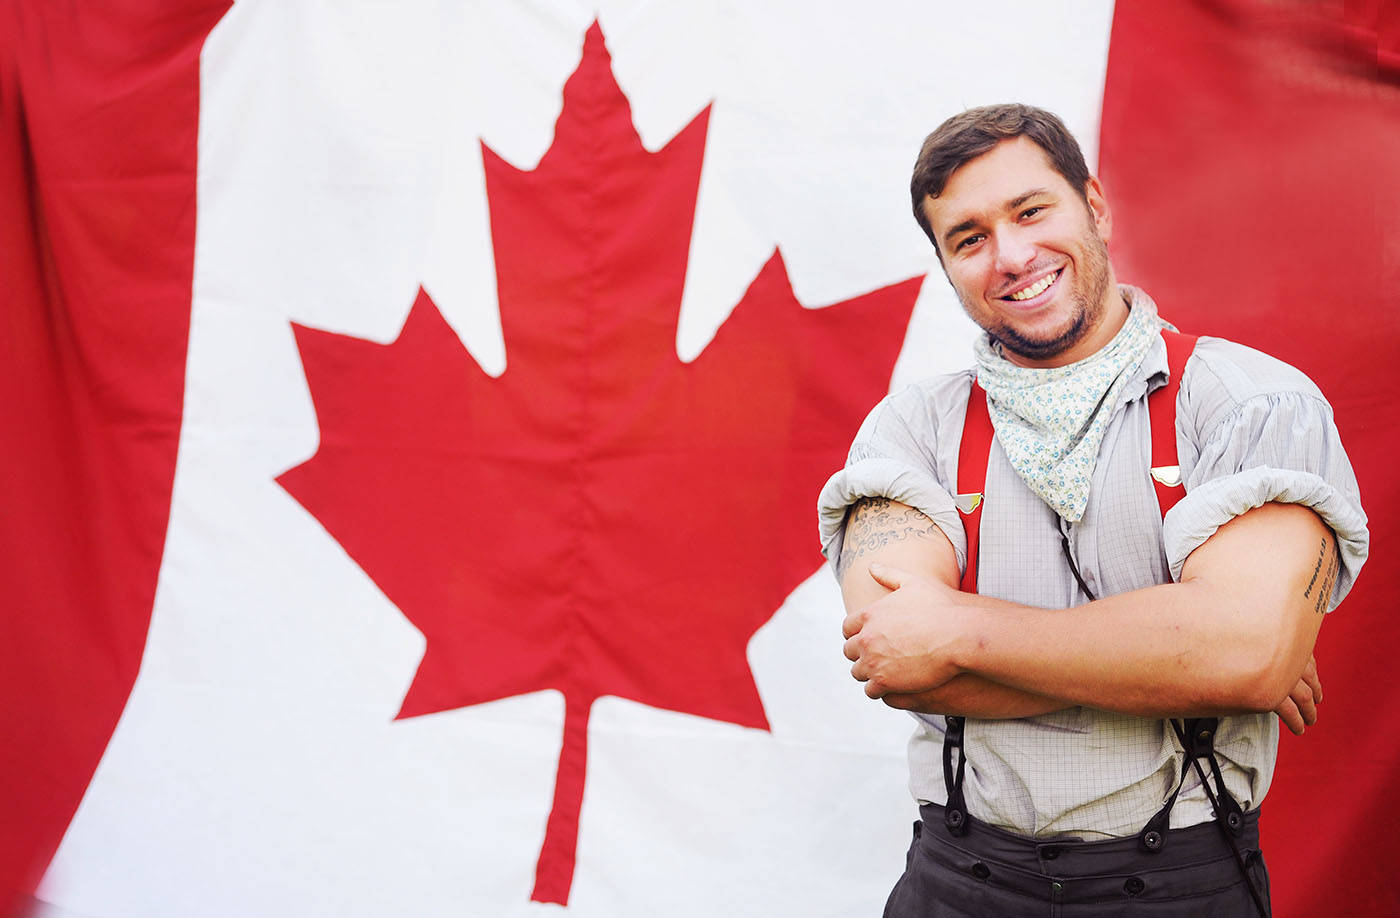 Interpreter Jonathan Fortier stands in front of a giant Canadian flag at the Fort Langley National Historic Site, which is celebrating Canada Day this Saturday, July 1 with re-enactments, cake, a citizenship ceremonies, and many other activities. The Fort's Canada Day celebration is free to attend. There will also be free family celebrations at Willoughby Community Park (next to the Langley Events Centre), as well as in Aldergrove. For a full listing of local Canada Day events, look in the Wednesday, June 28 edition of the Langley Times or online at www.langleytimes.com.                                Troy Landreville Langley Times